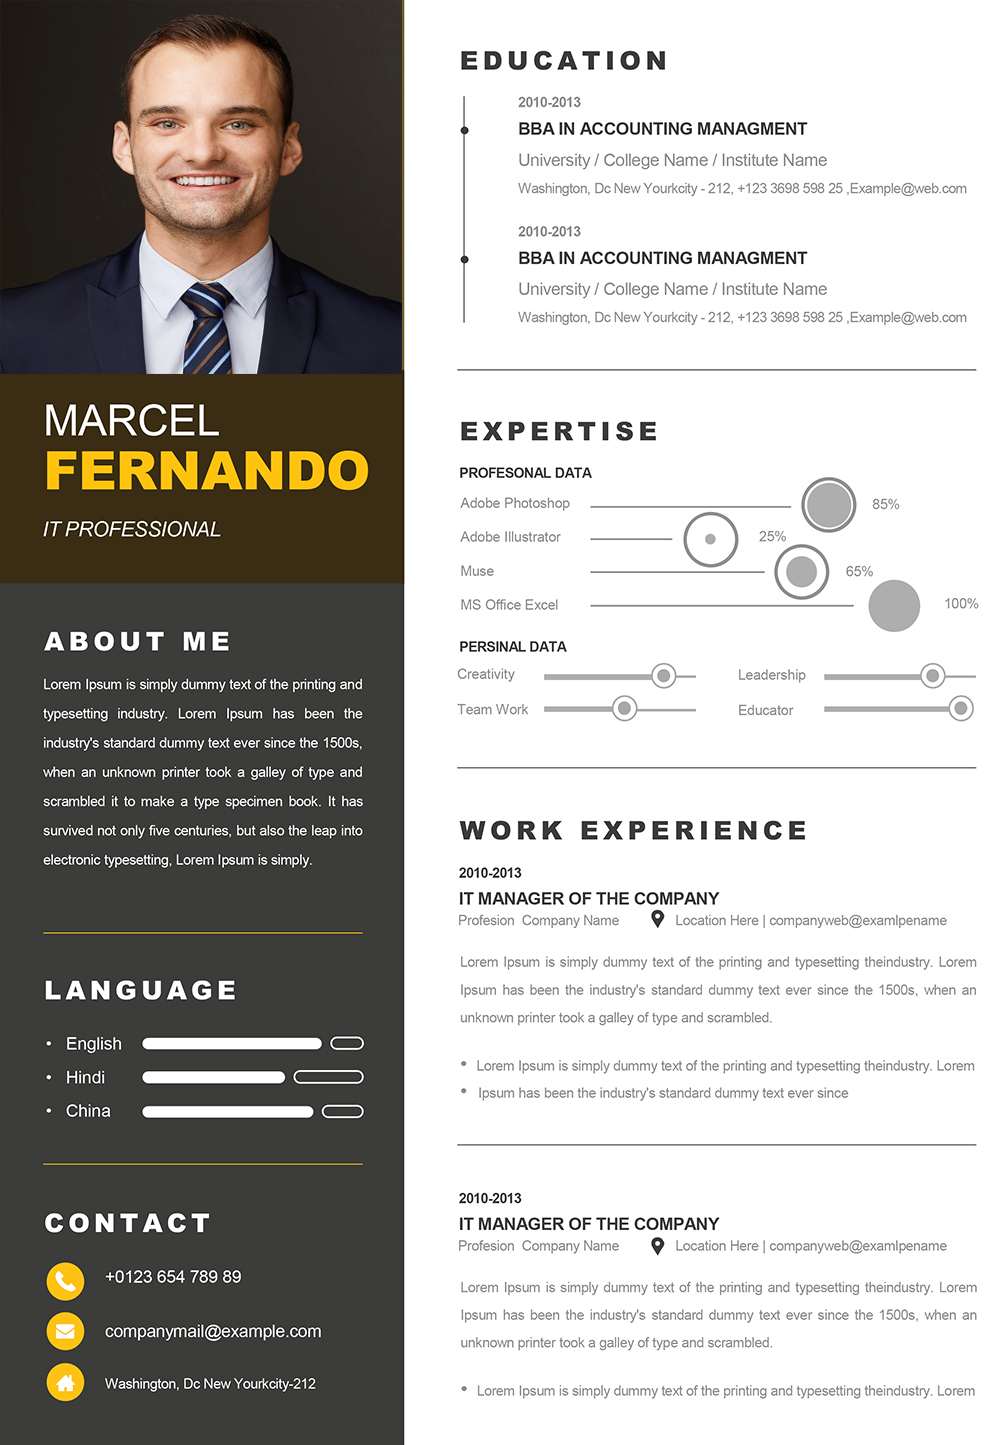 Professional-Web-Developer-Resume-Template-1 One Page Resume Format Docx on cover letter sample, cover letter example, templates for students, format for bsc students, sample production worker, templates free download, third party risk management,